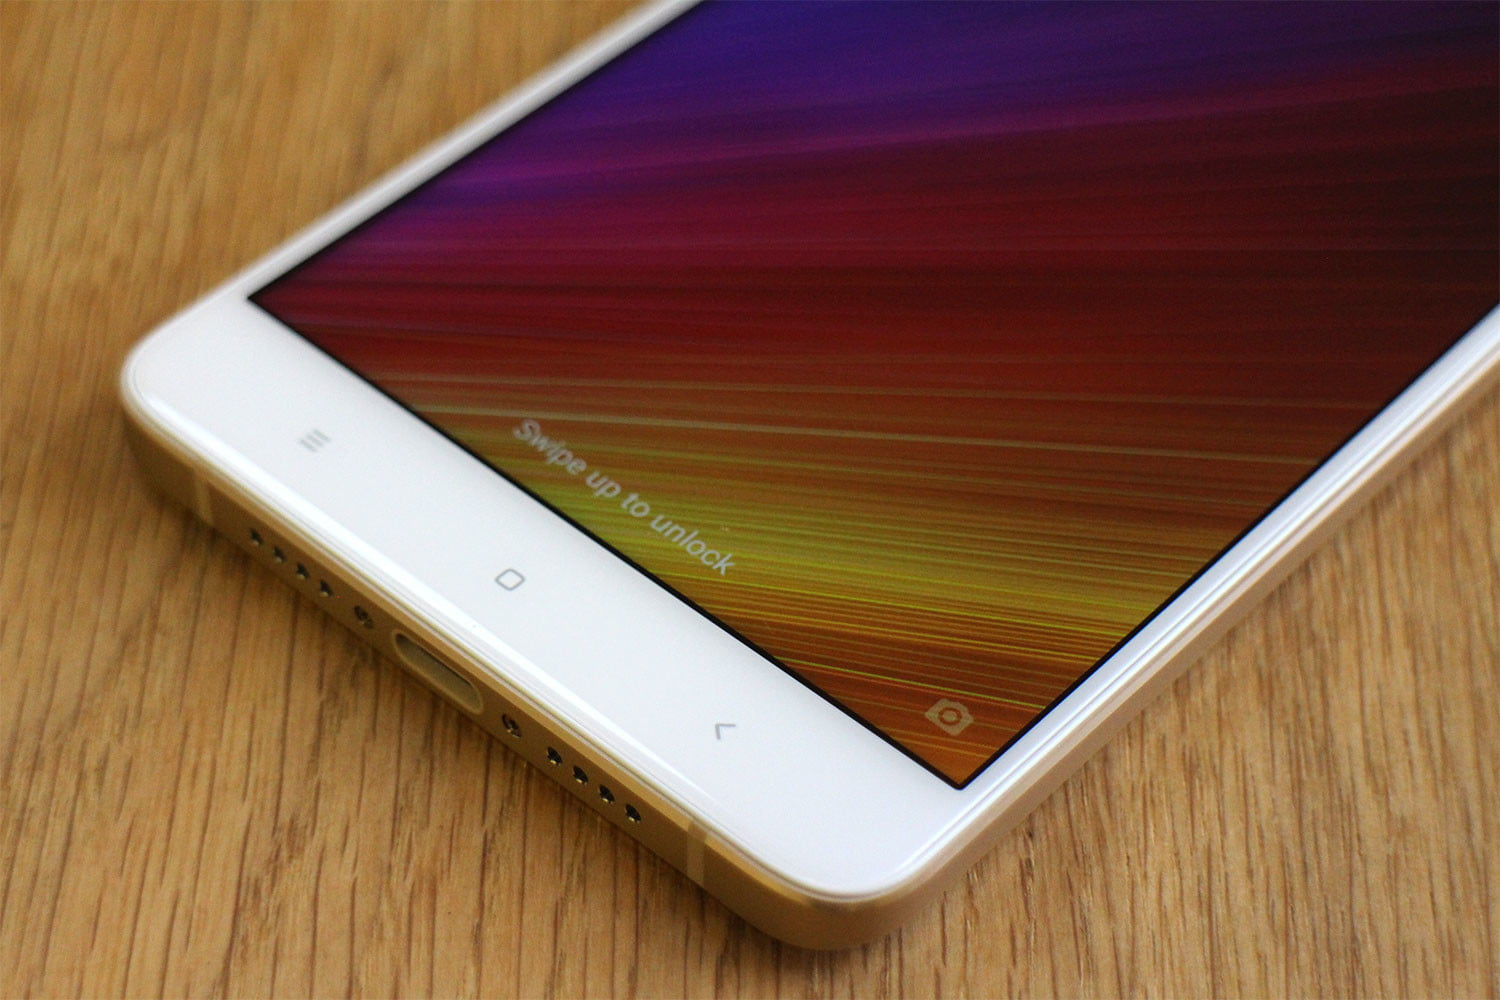 Blame It On The Bokeh Frustratingly Mi5s Plus Is A Mixed Bag Xiaomi Mi 5s 4gb 64gb Review